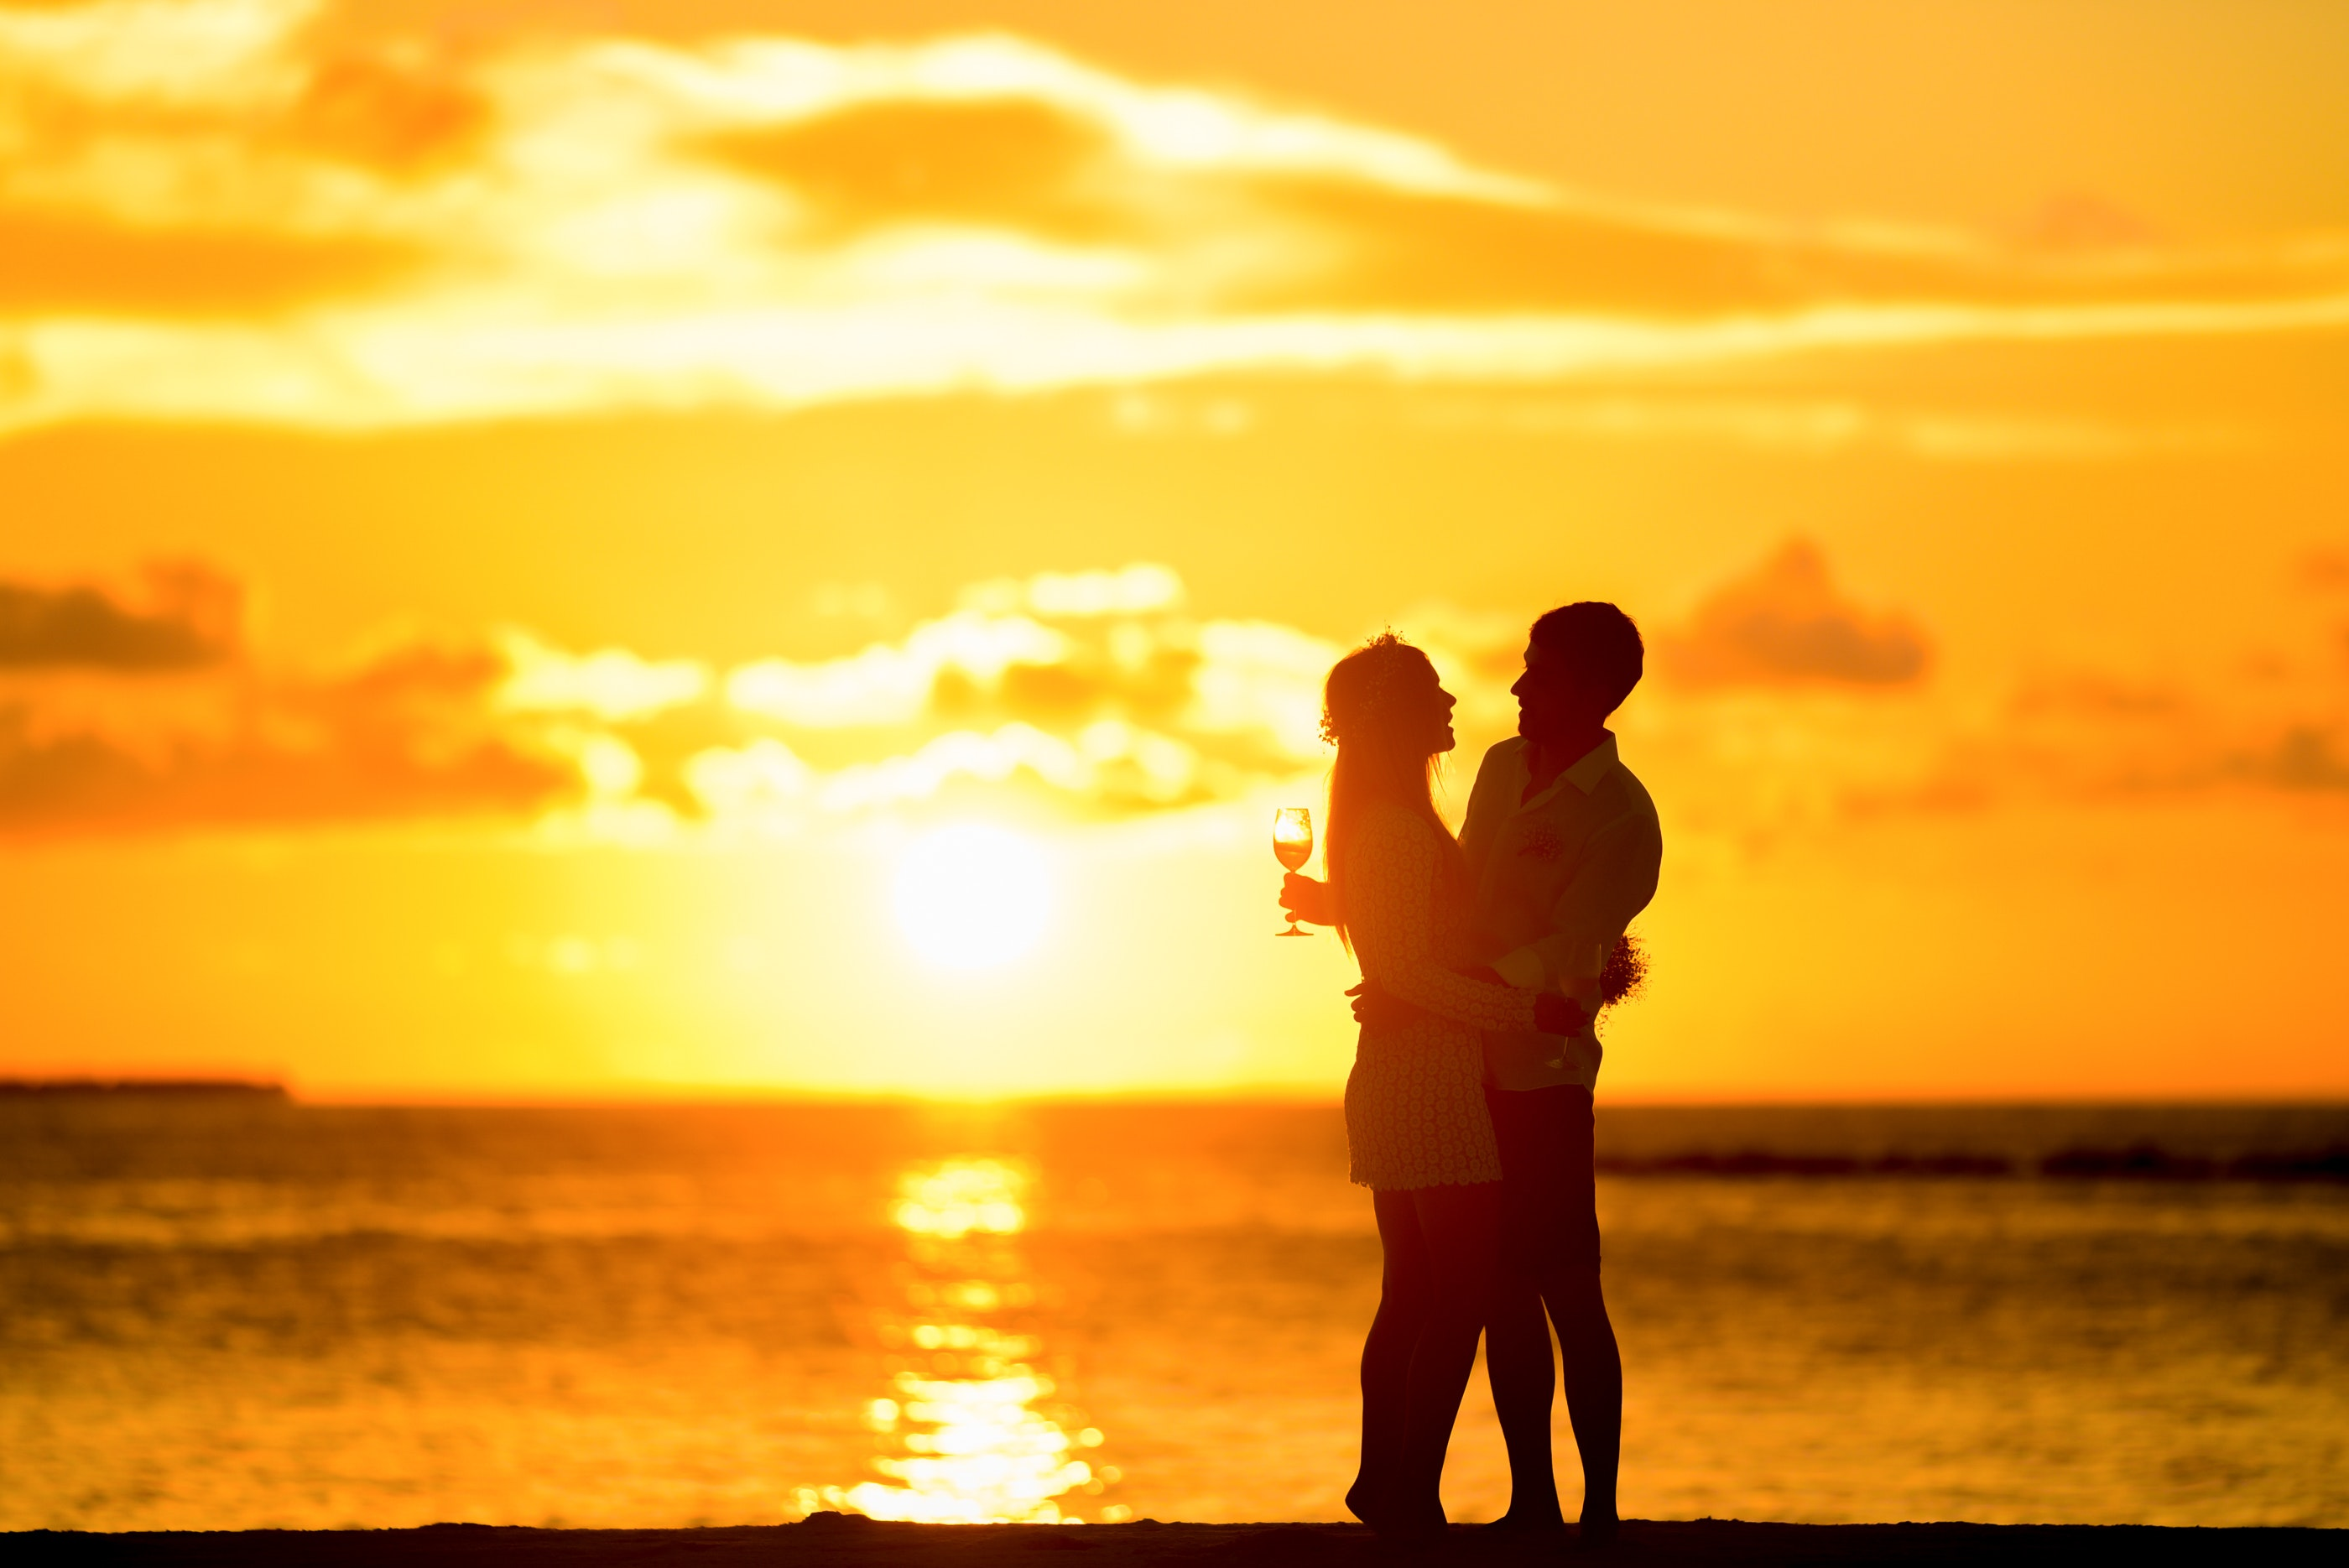 Couple standing in the seashore hugging each other during sunset photo